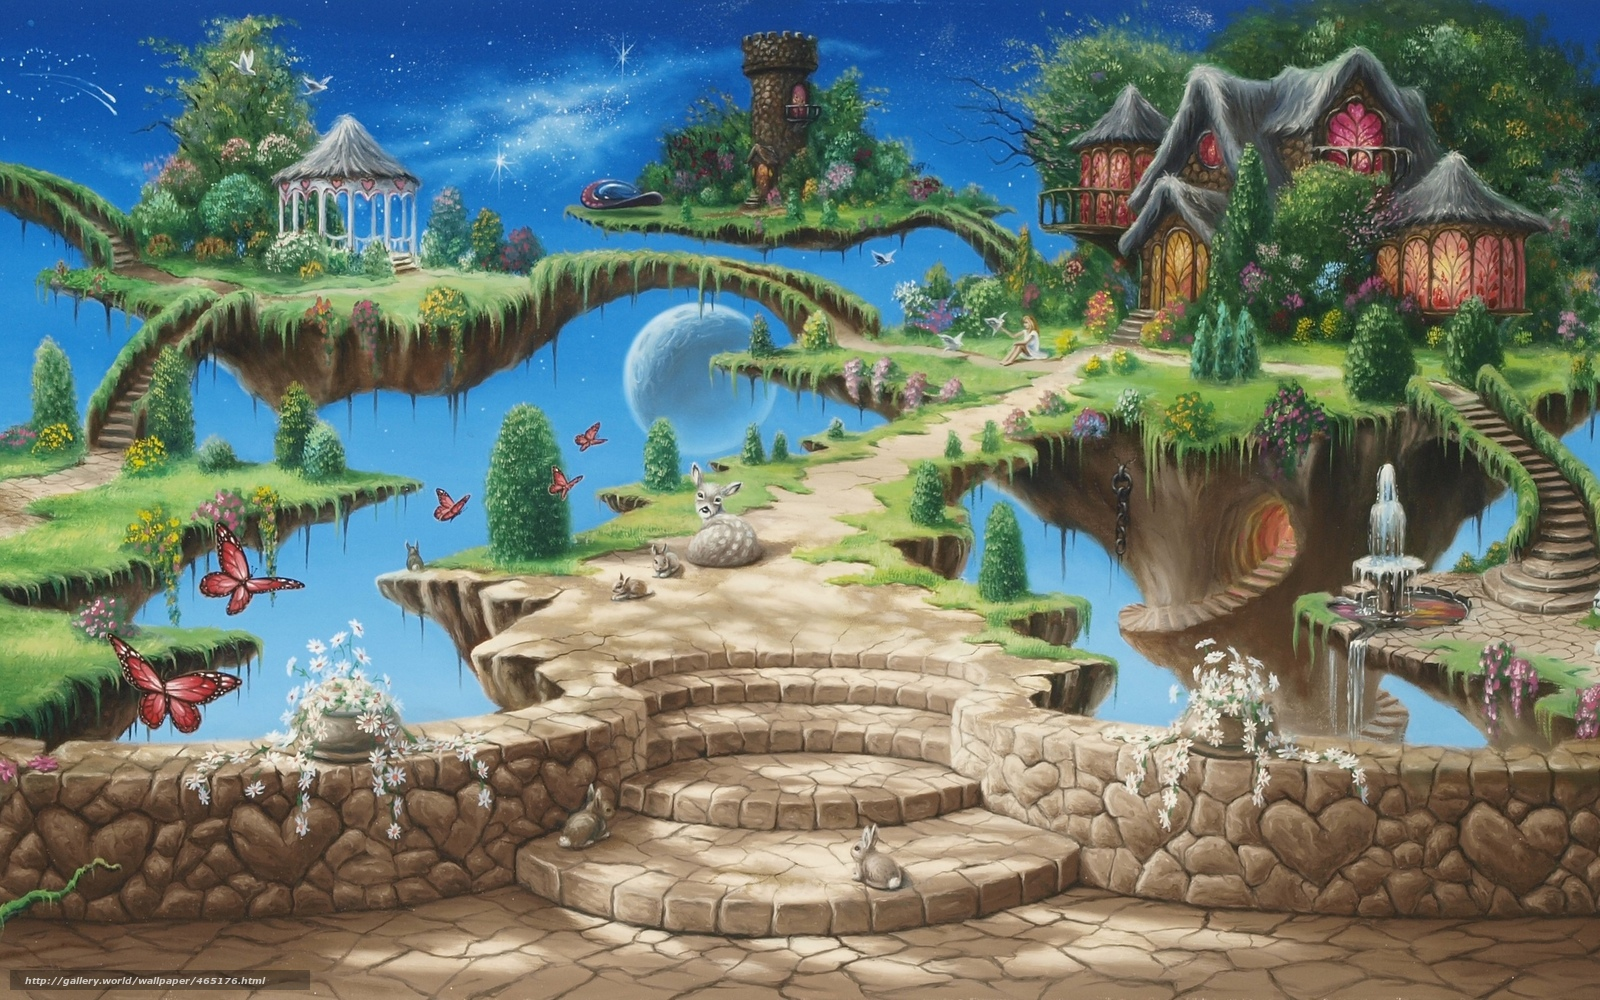 fairytales just a fantasy essay Essay paragraphs free samples the fantasy of the truly just world presented in fairytales is most probably just that.